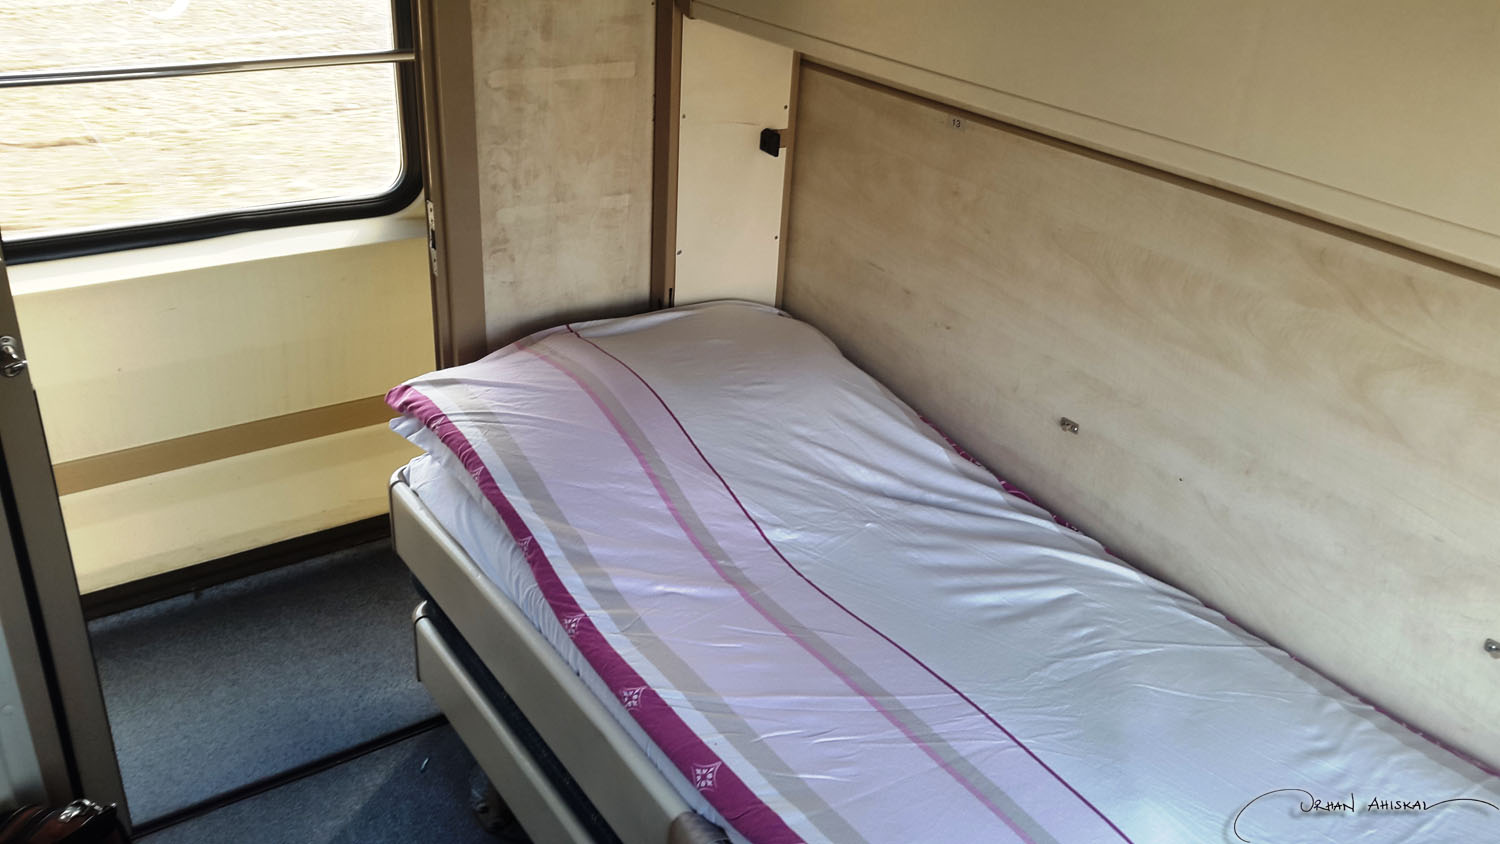 Bed and compartment. Photo: Orhan Ahıskal